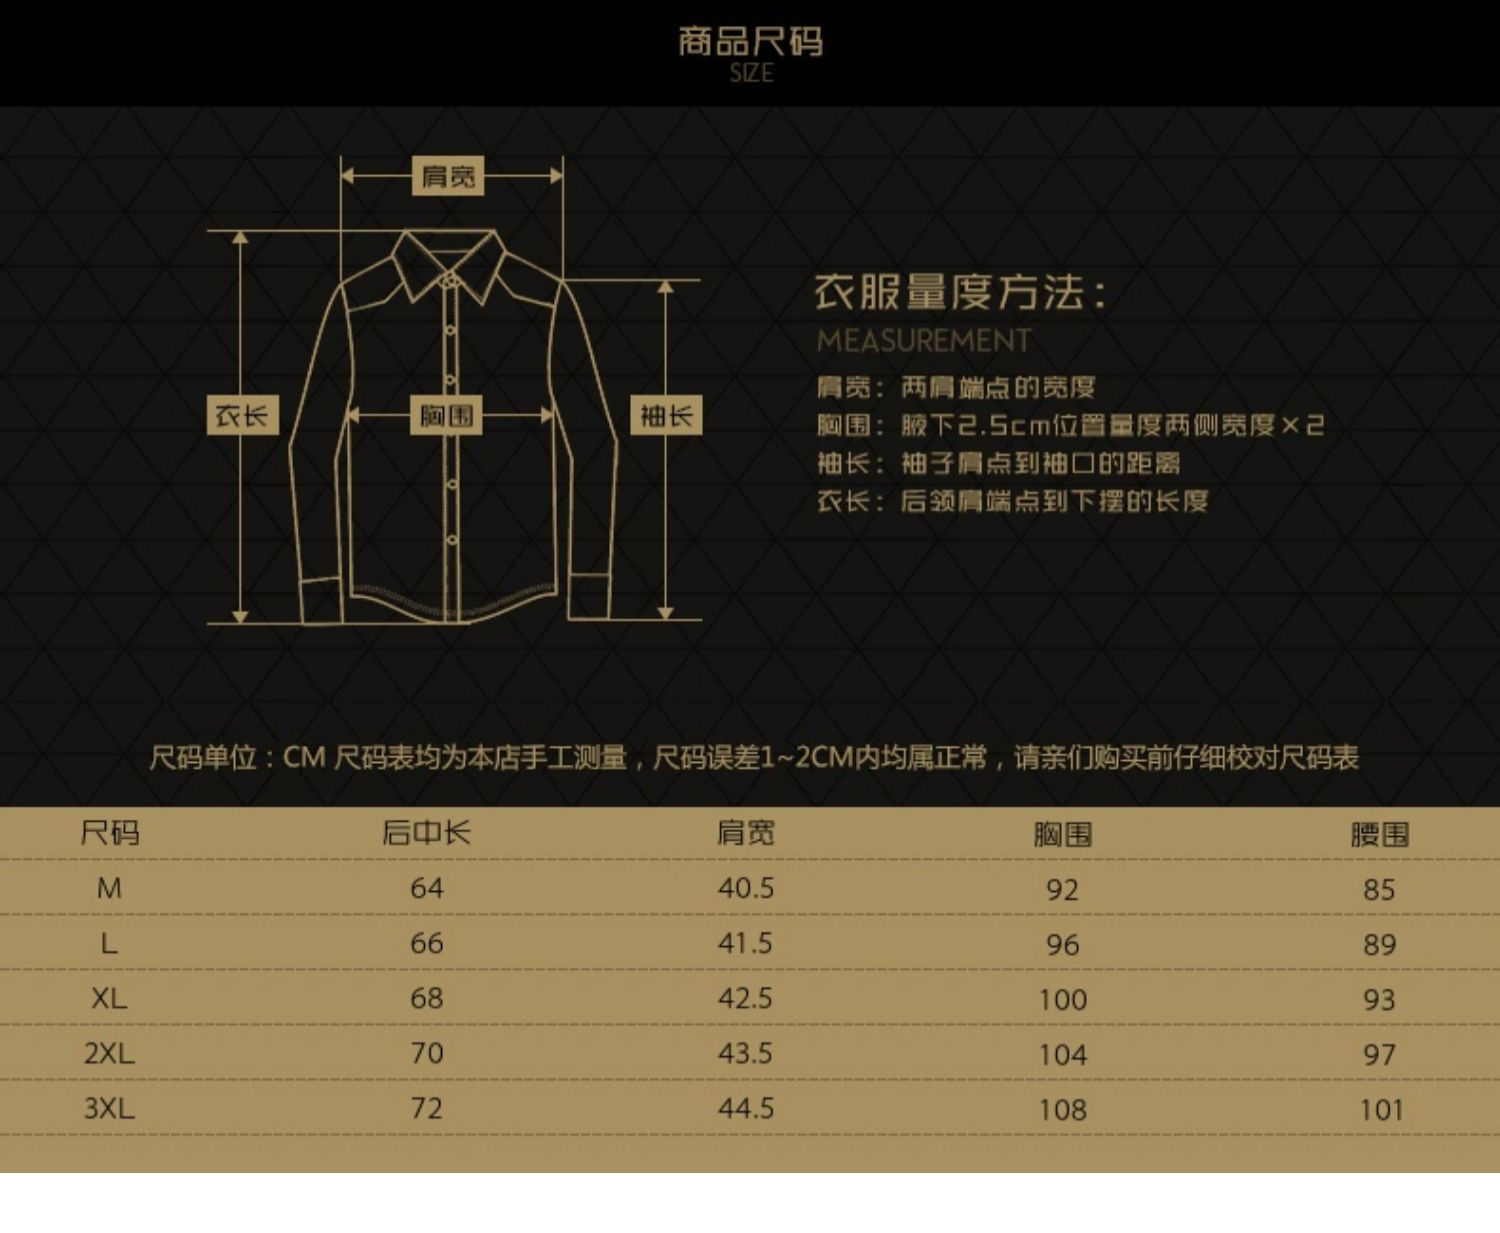 Linkin Park Palace Product Made The New Summer V-neck Splicing Men's Cultivate Morality Short Sleeve T-shirt Coat B192211278 74